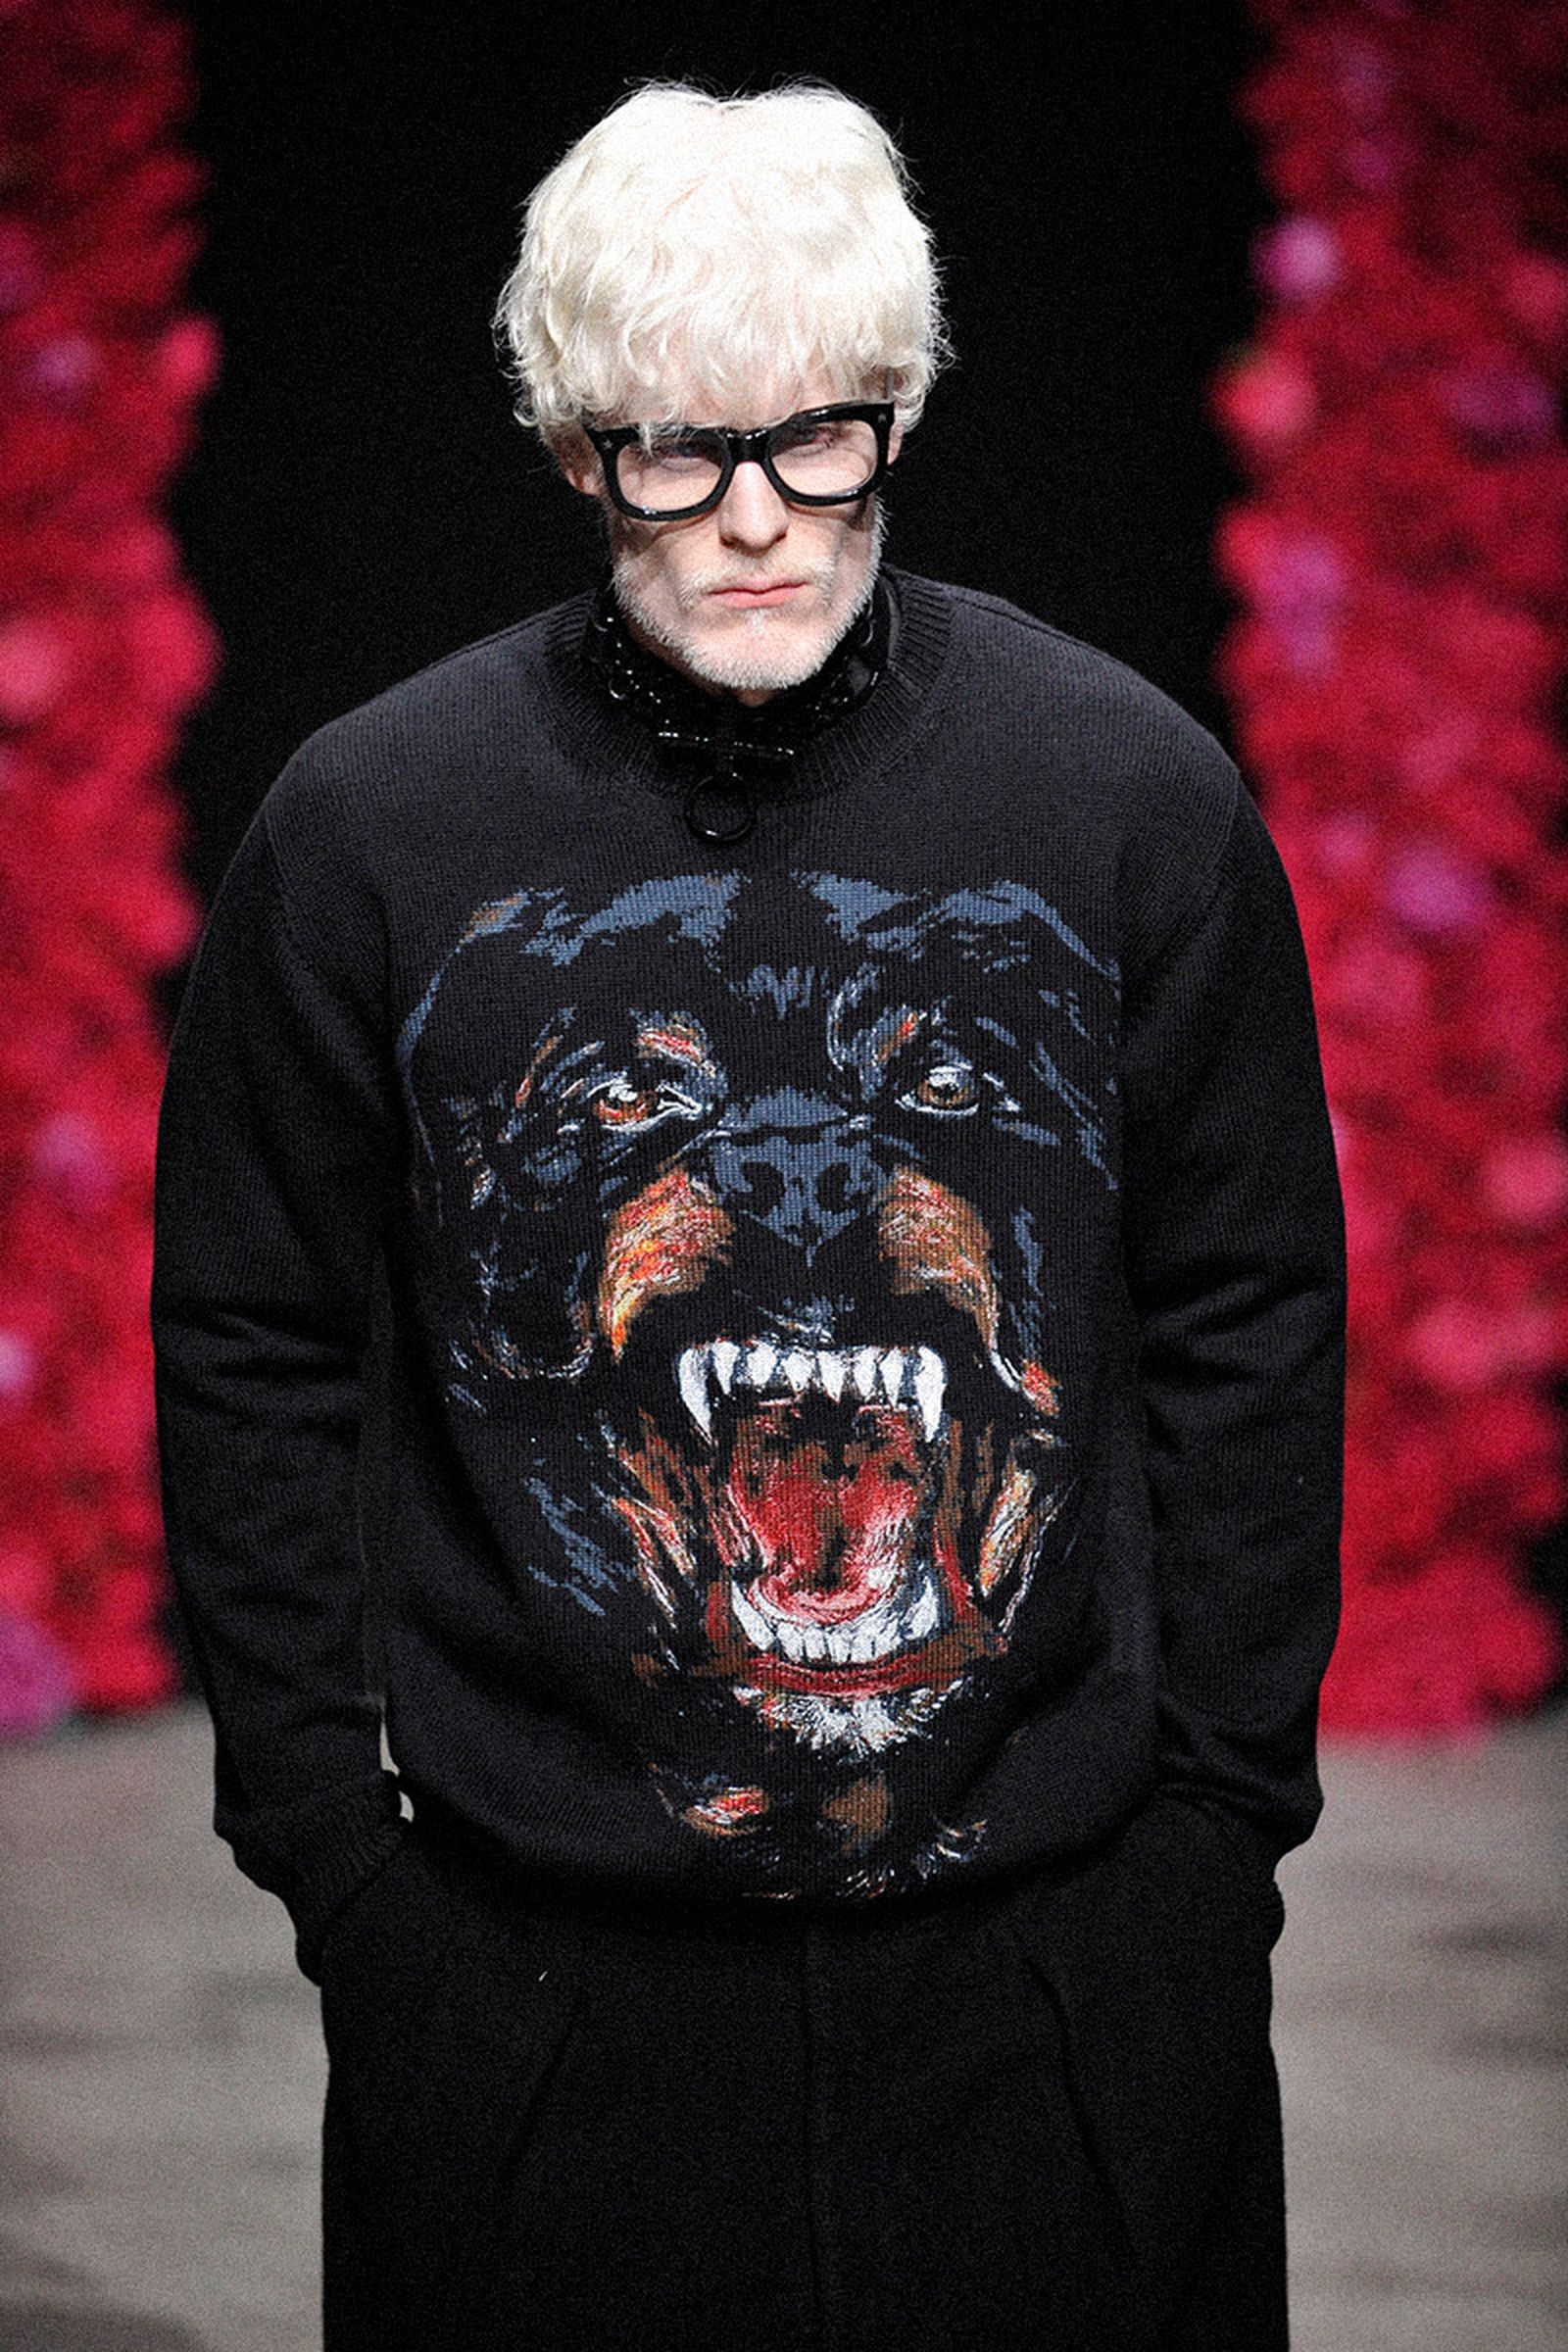 2010s-decade-luxury-streetwear-became-one-03